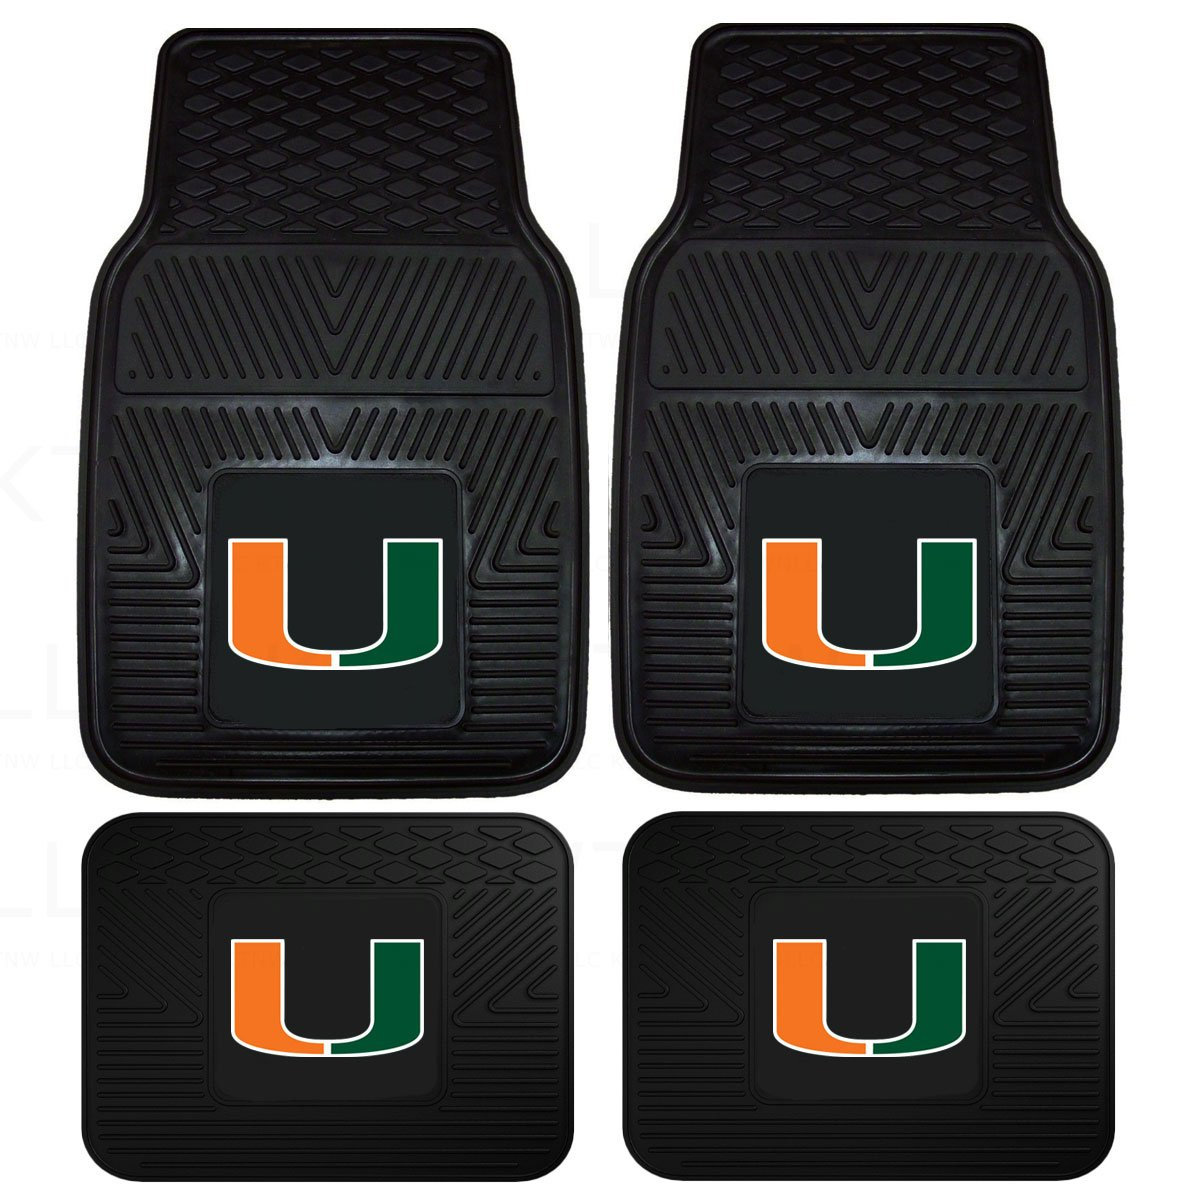 Officially Licensed NCAA Set of Universal Fit Front and Rear Logo Rubber Automotive Floor Mats Univeristy of Miami Hurricanes